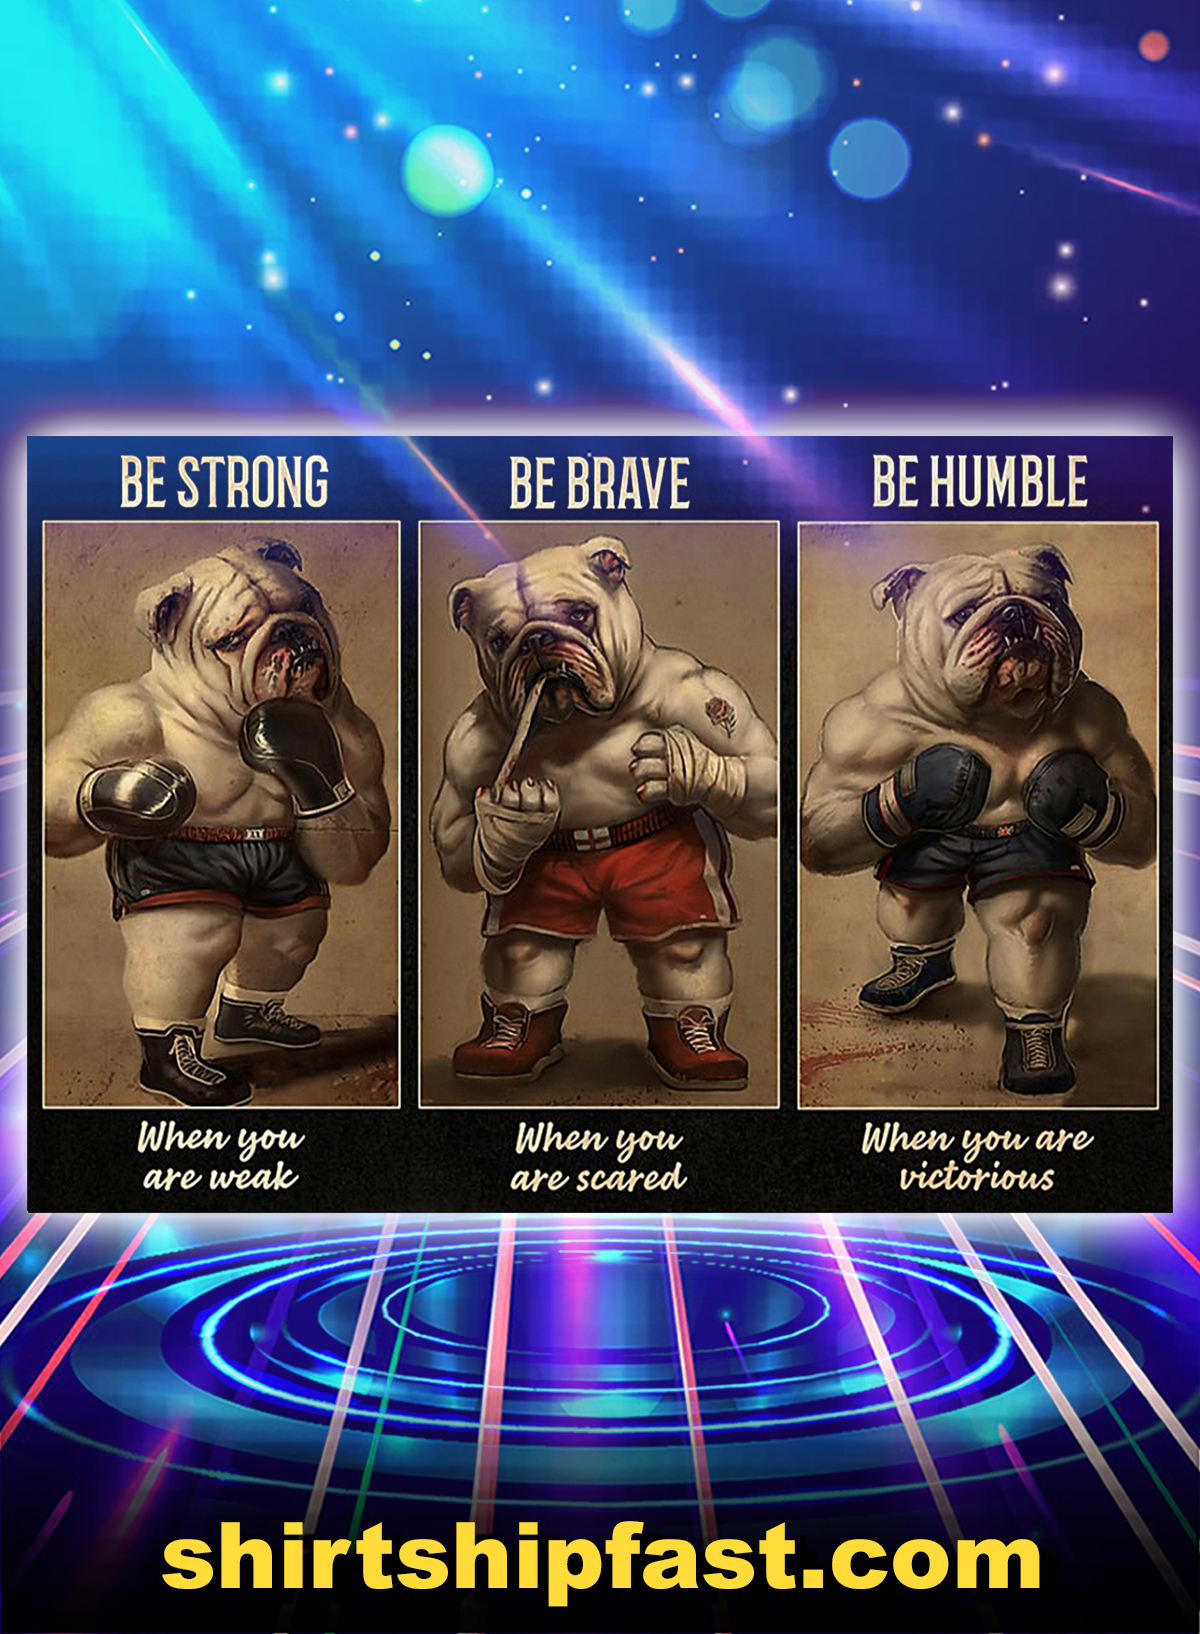 Bulldog boxer be strong be brave be humble poster - A4